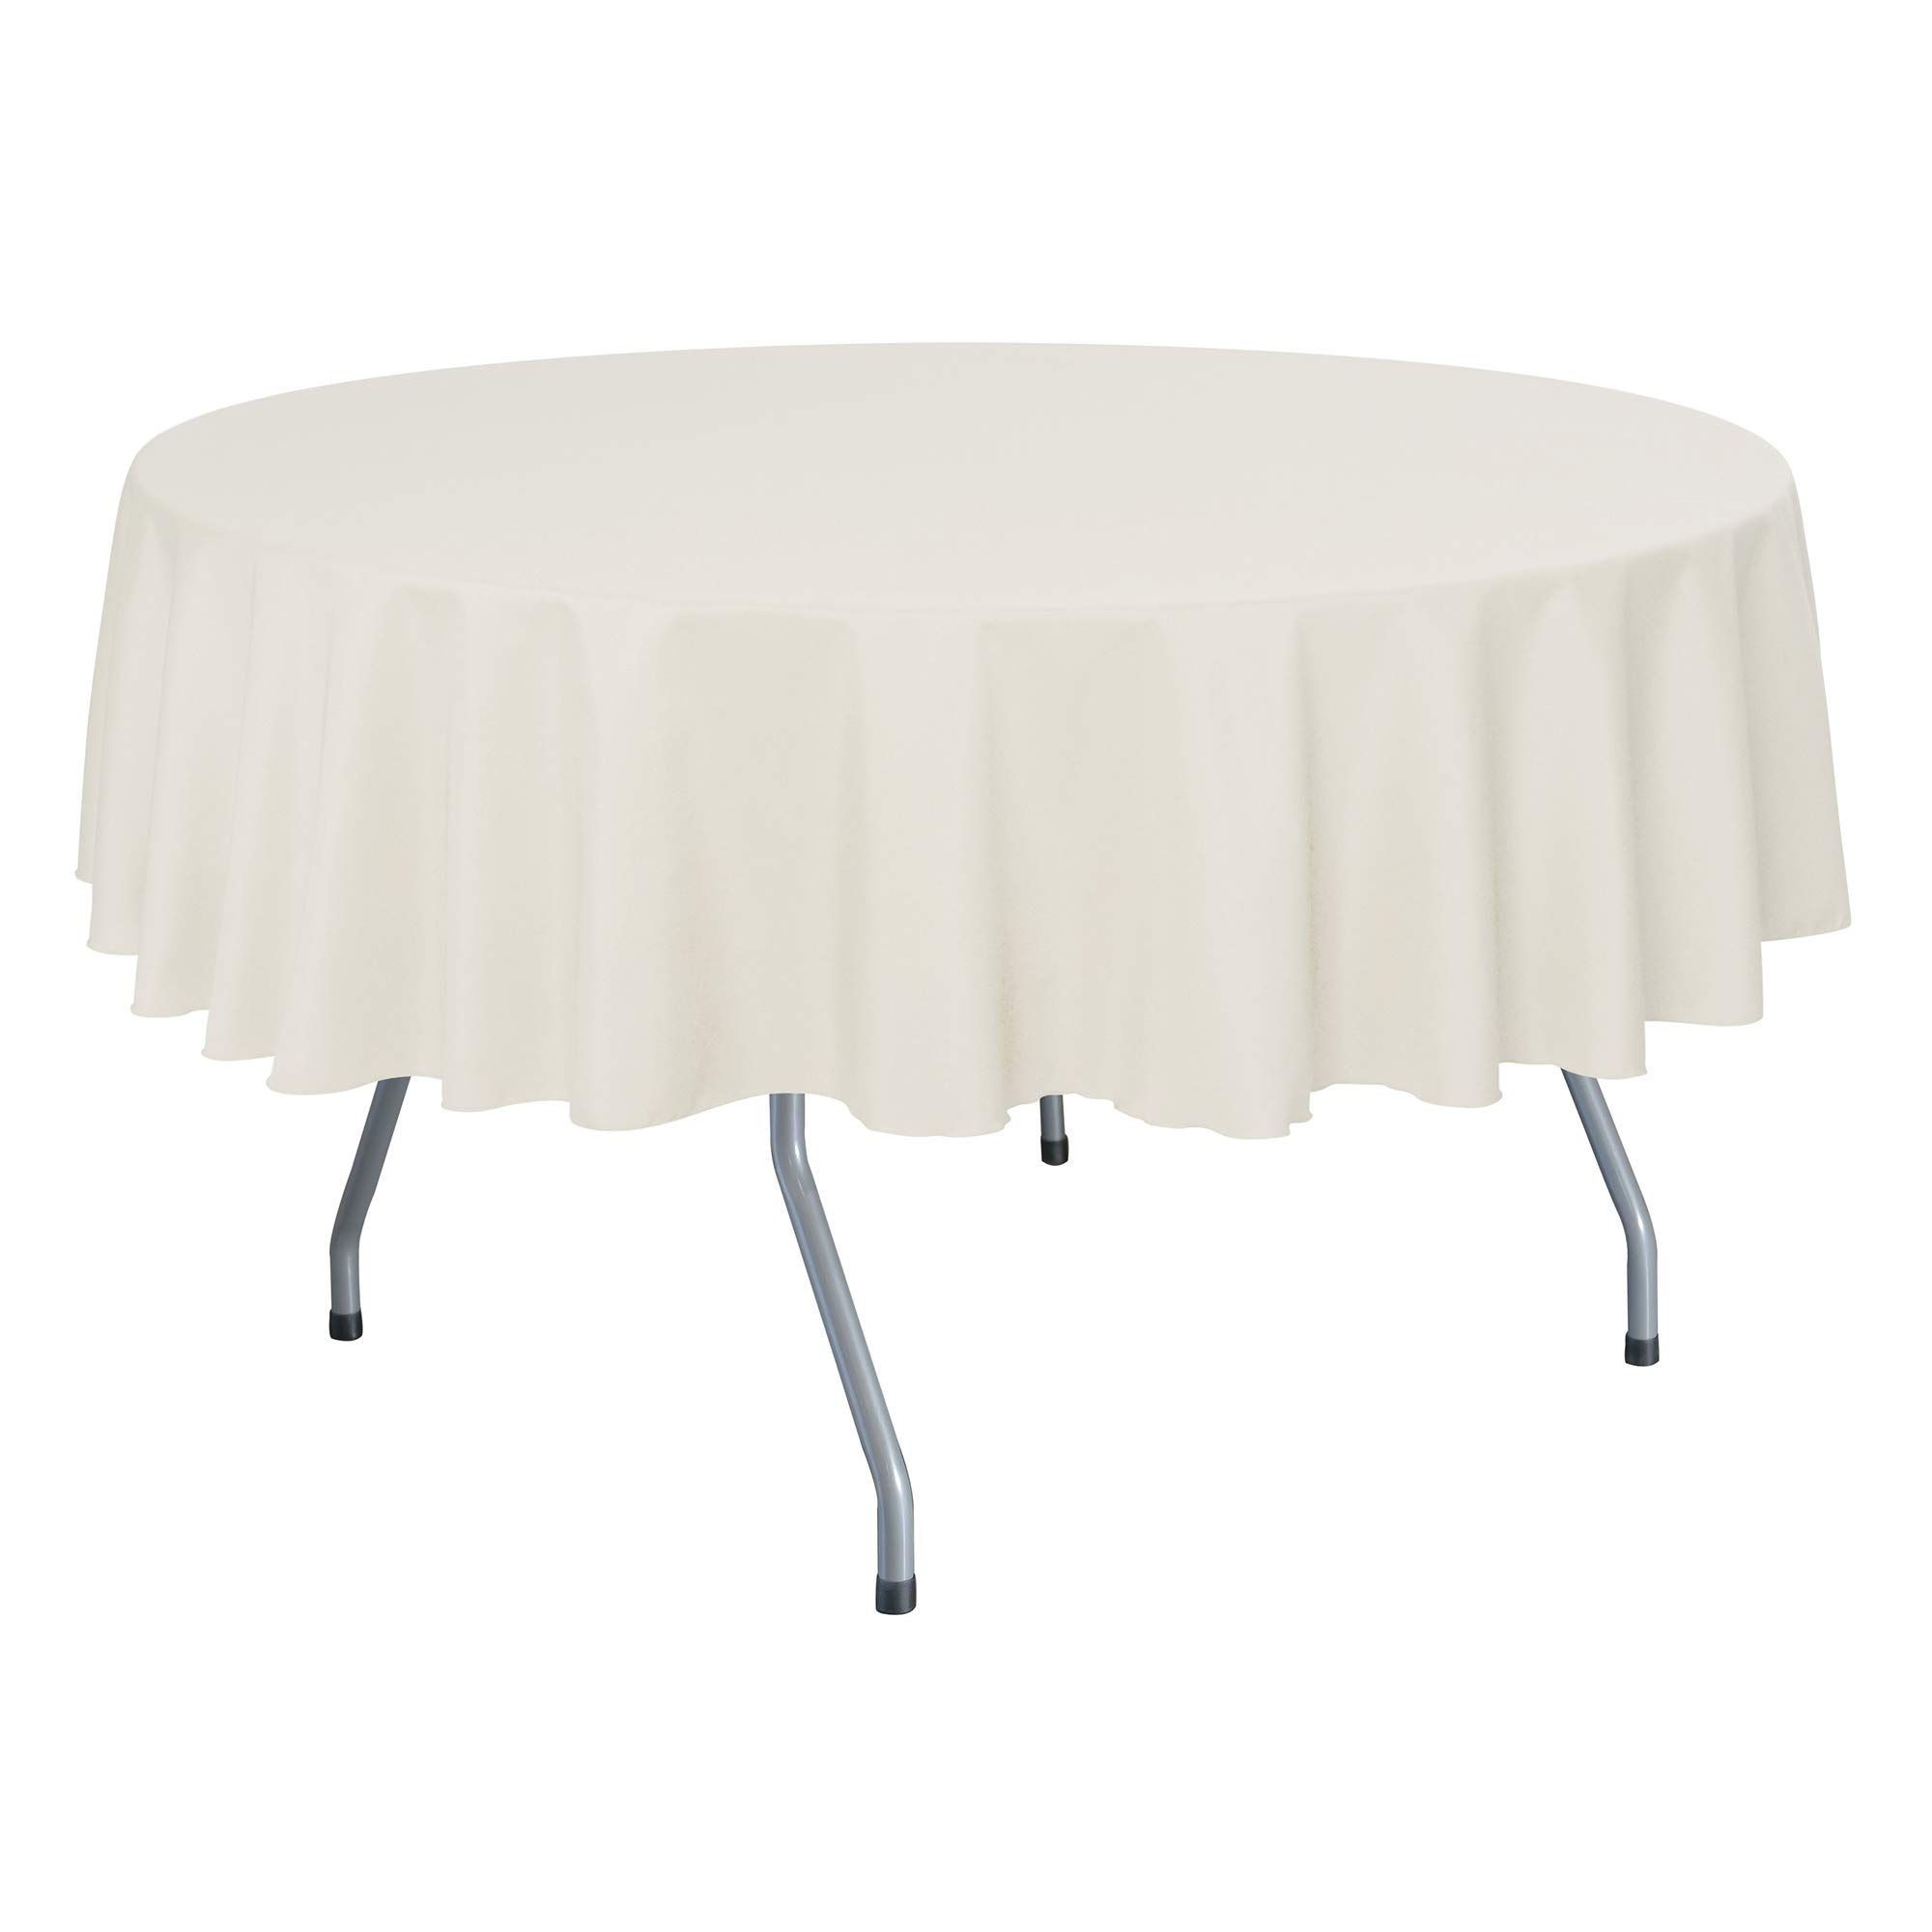 Ultimate Textile -10 Pack- 60-Inch Round Polyester Linen Tablecloth - Fits Tables Smaller Than 60-Inches in Diameter, Ivory Cream by Ultimate Textile